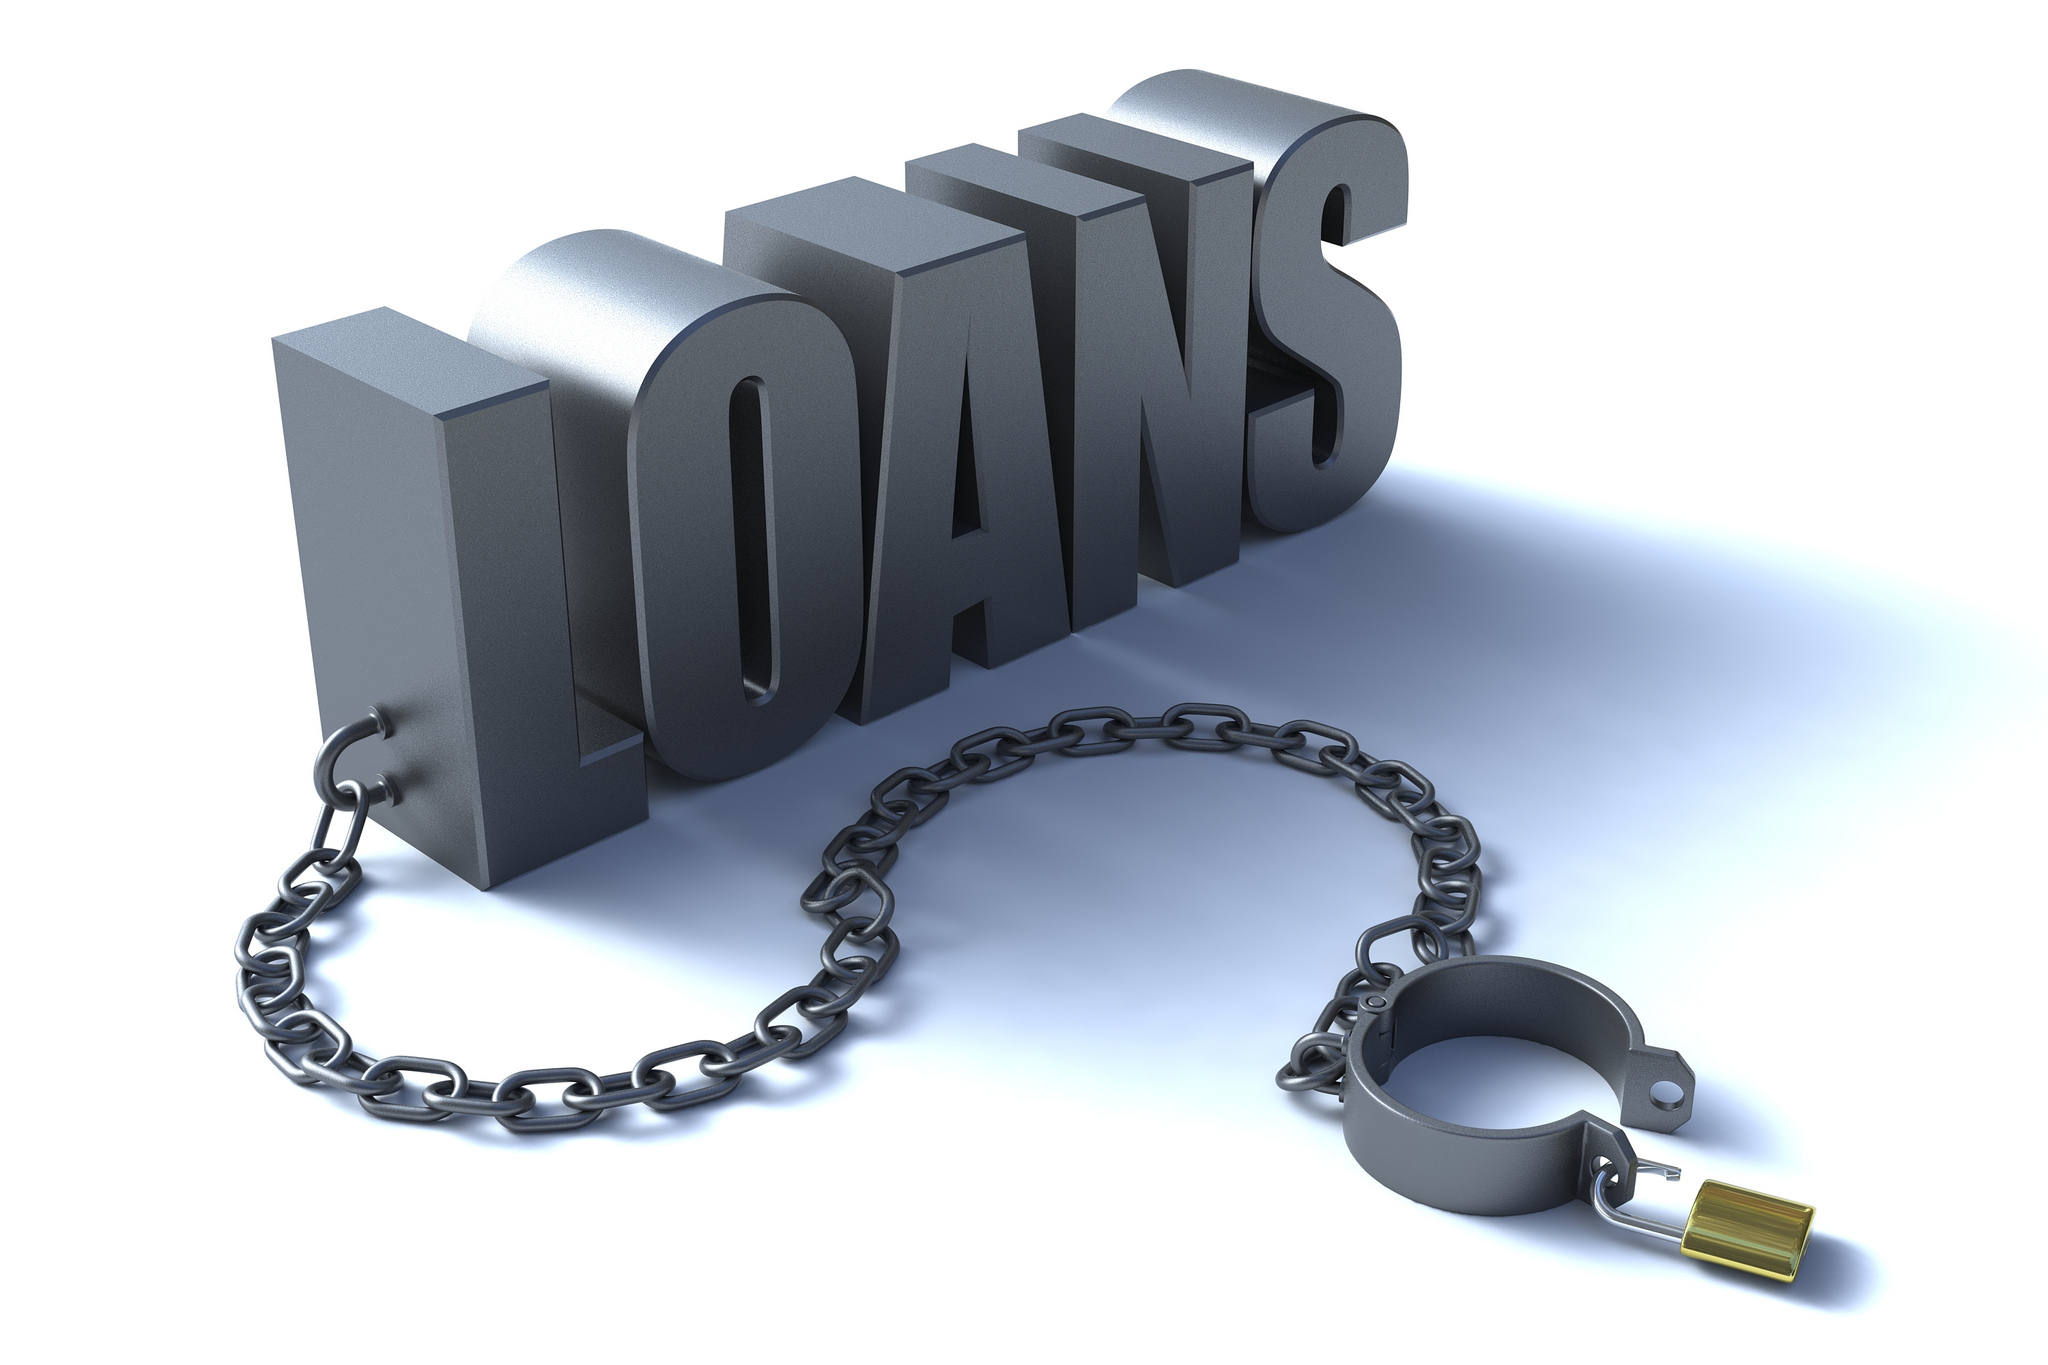 Payday Loans For People on Benefits - Tailor-made Solution